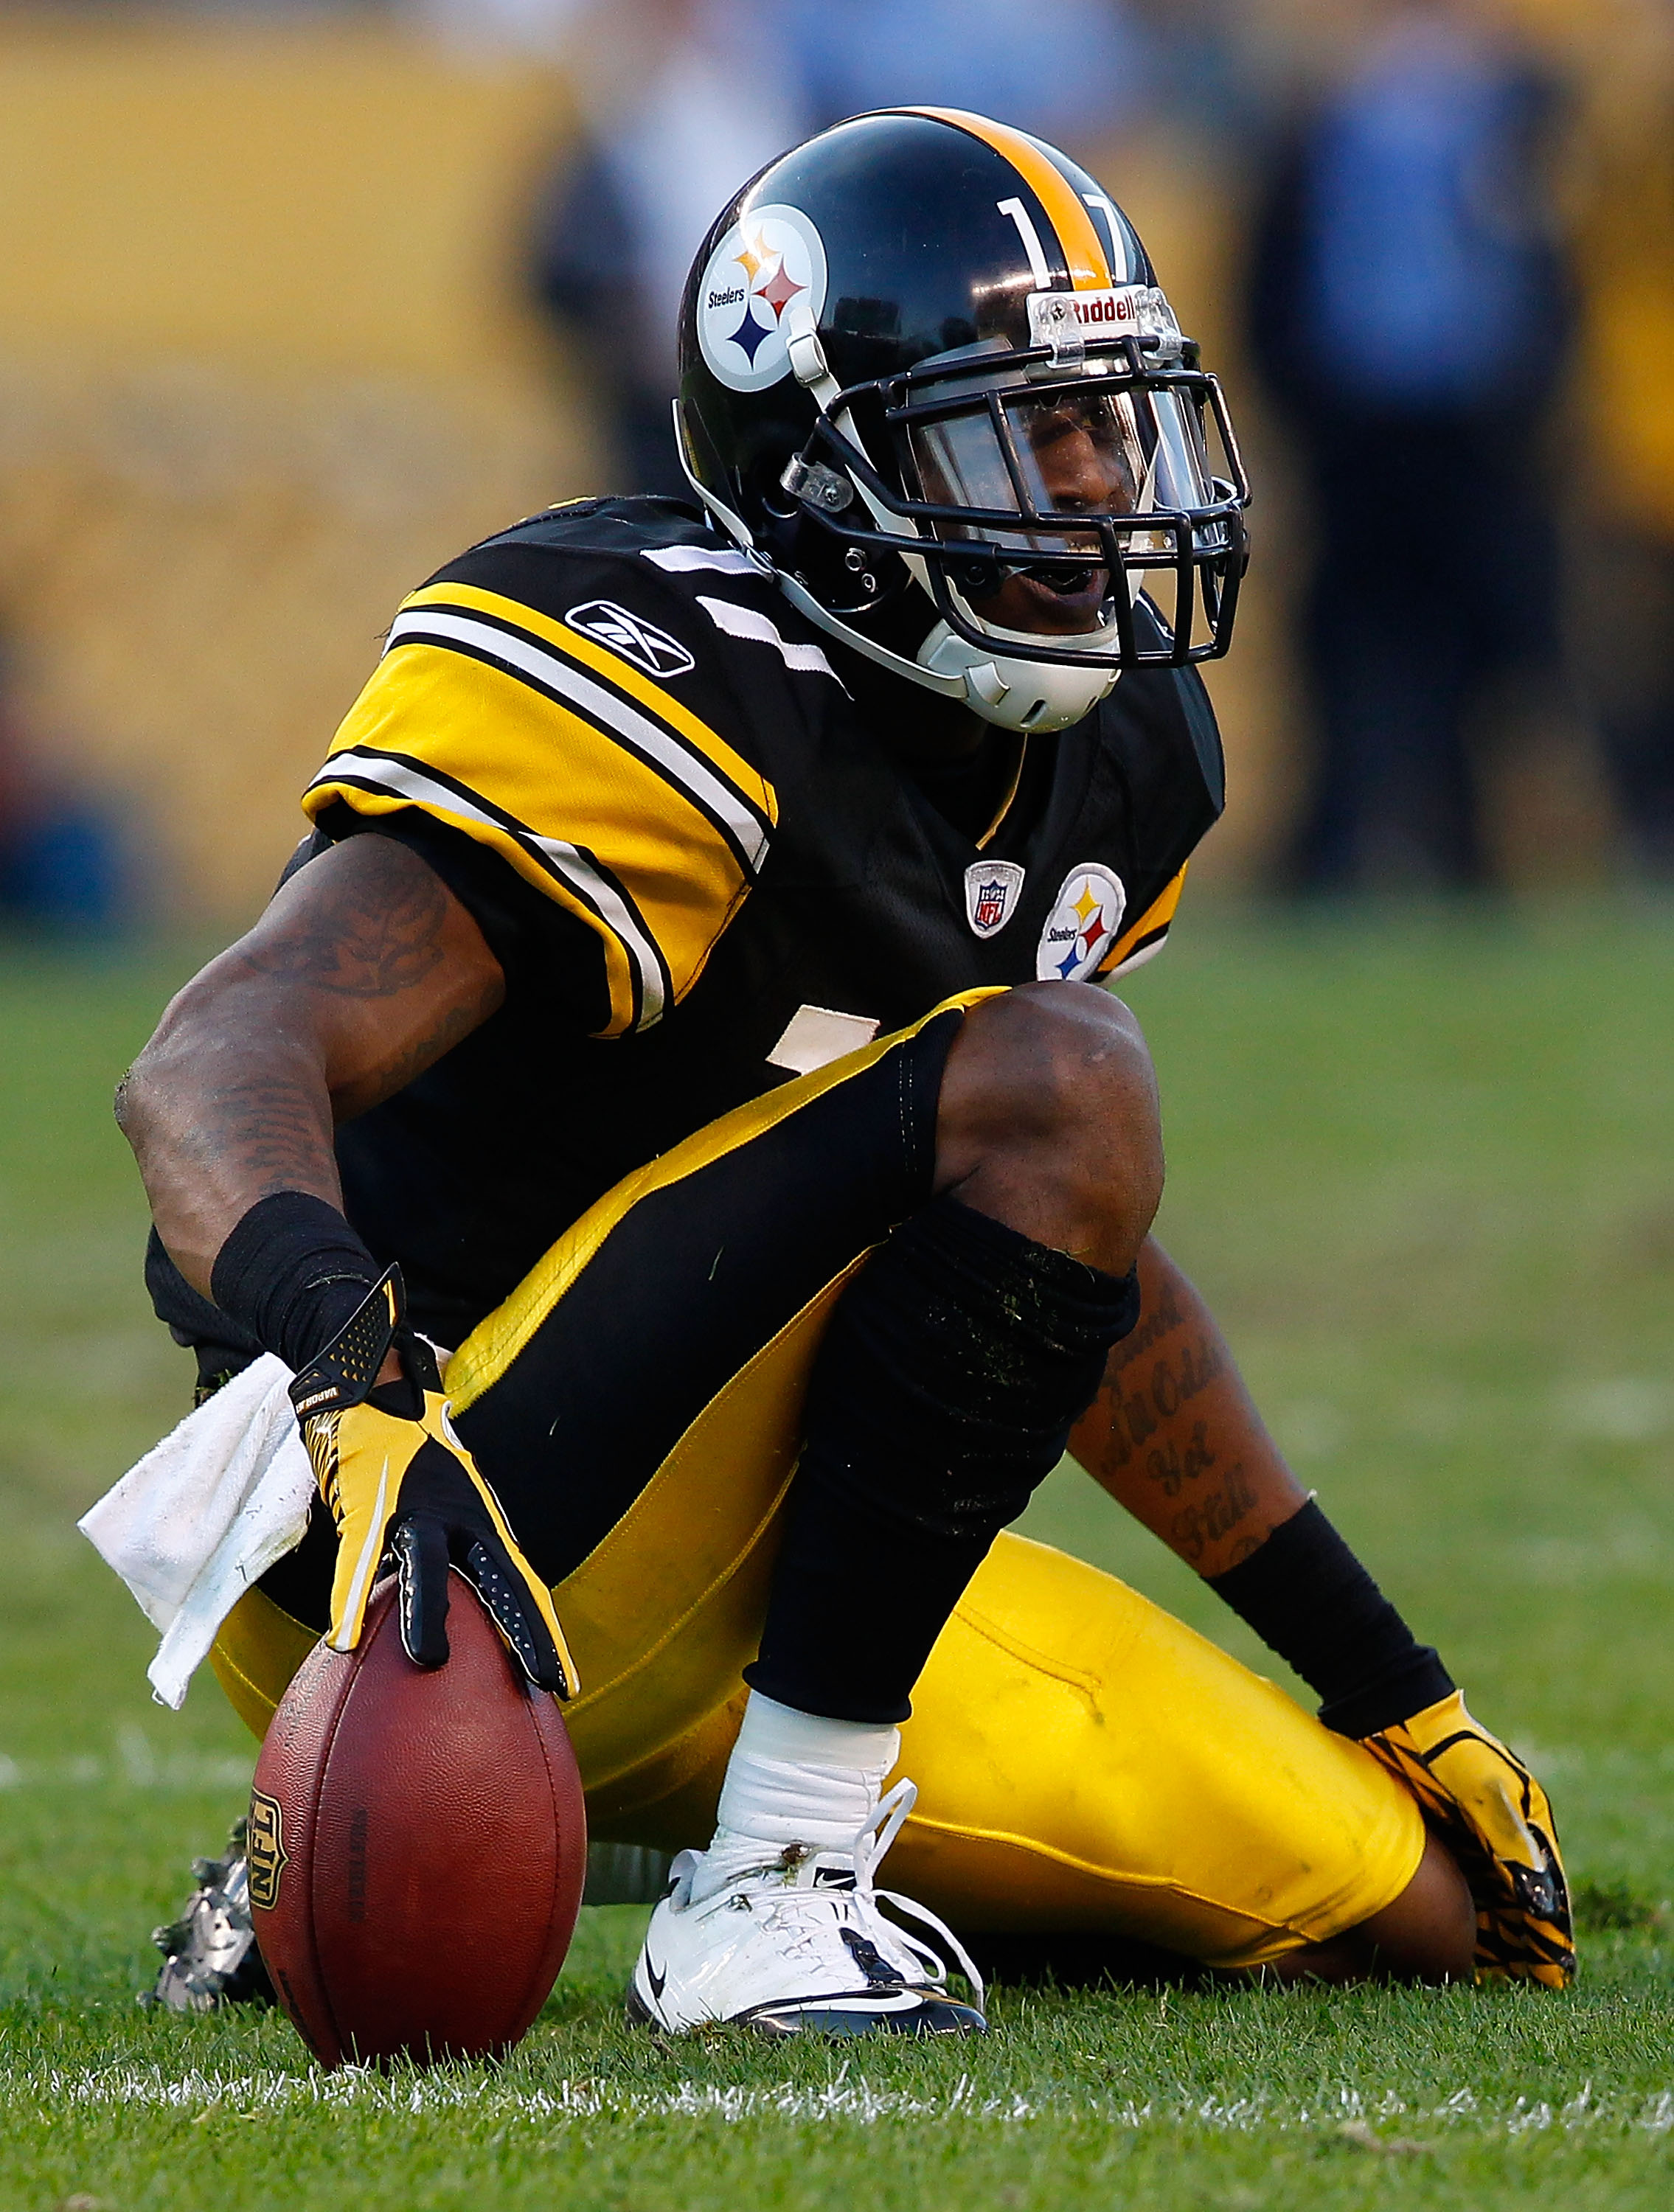 PITTSBURGH - NOVEMBER 21:  Mike Wallace #17 of the Pittsburgh Steelers celebrates after catching a pass for a first down against the Oakland Raiders during the game on November 21, 2010 at Heinz Field in Pittsburgh, Pennsylvania.  (Photo by Jared Wickerha